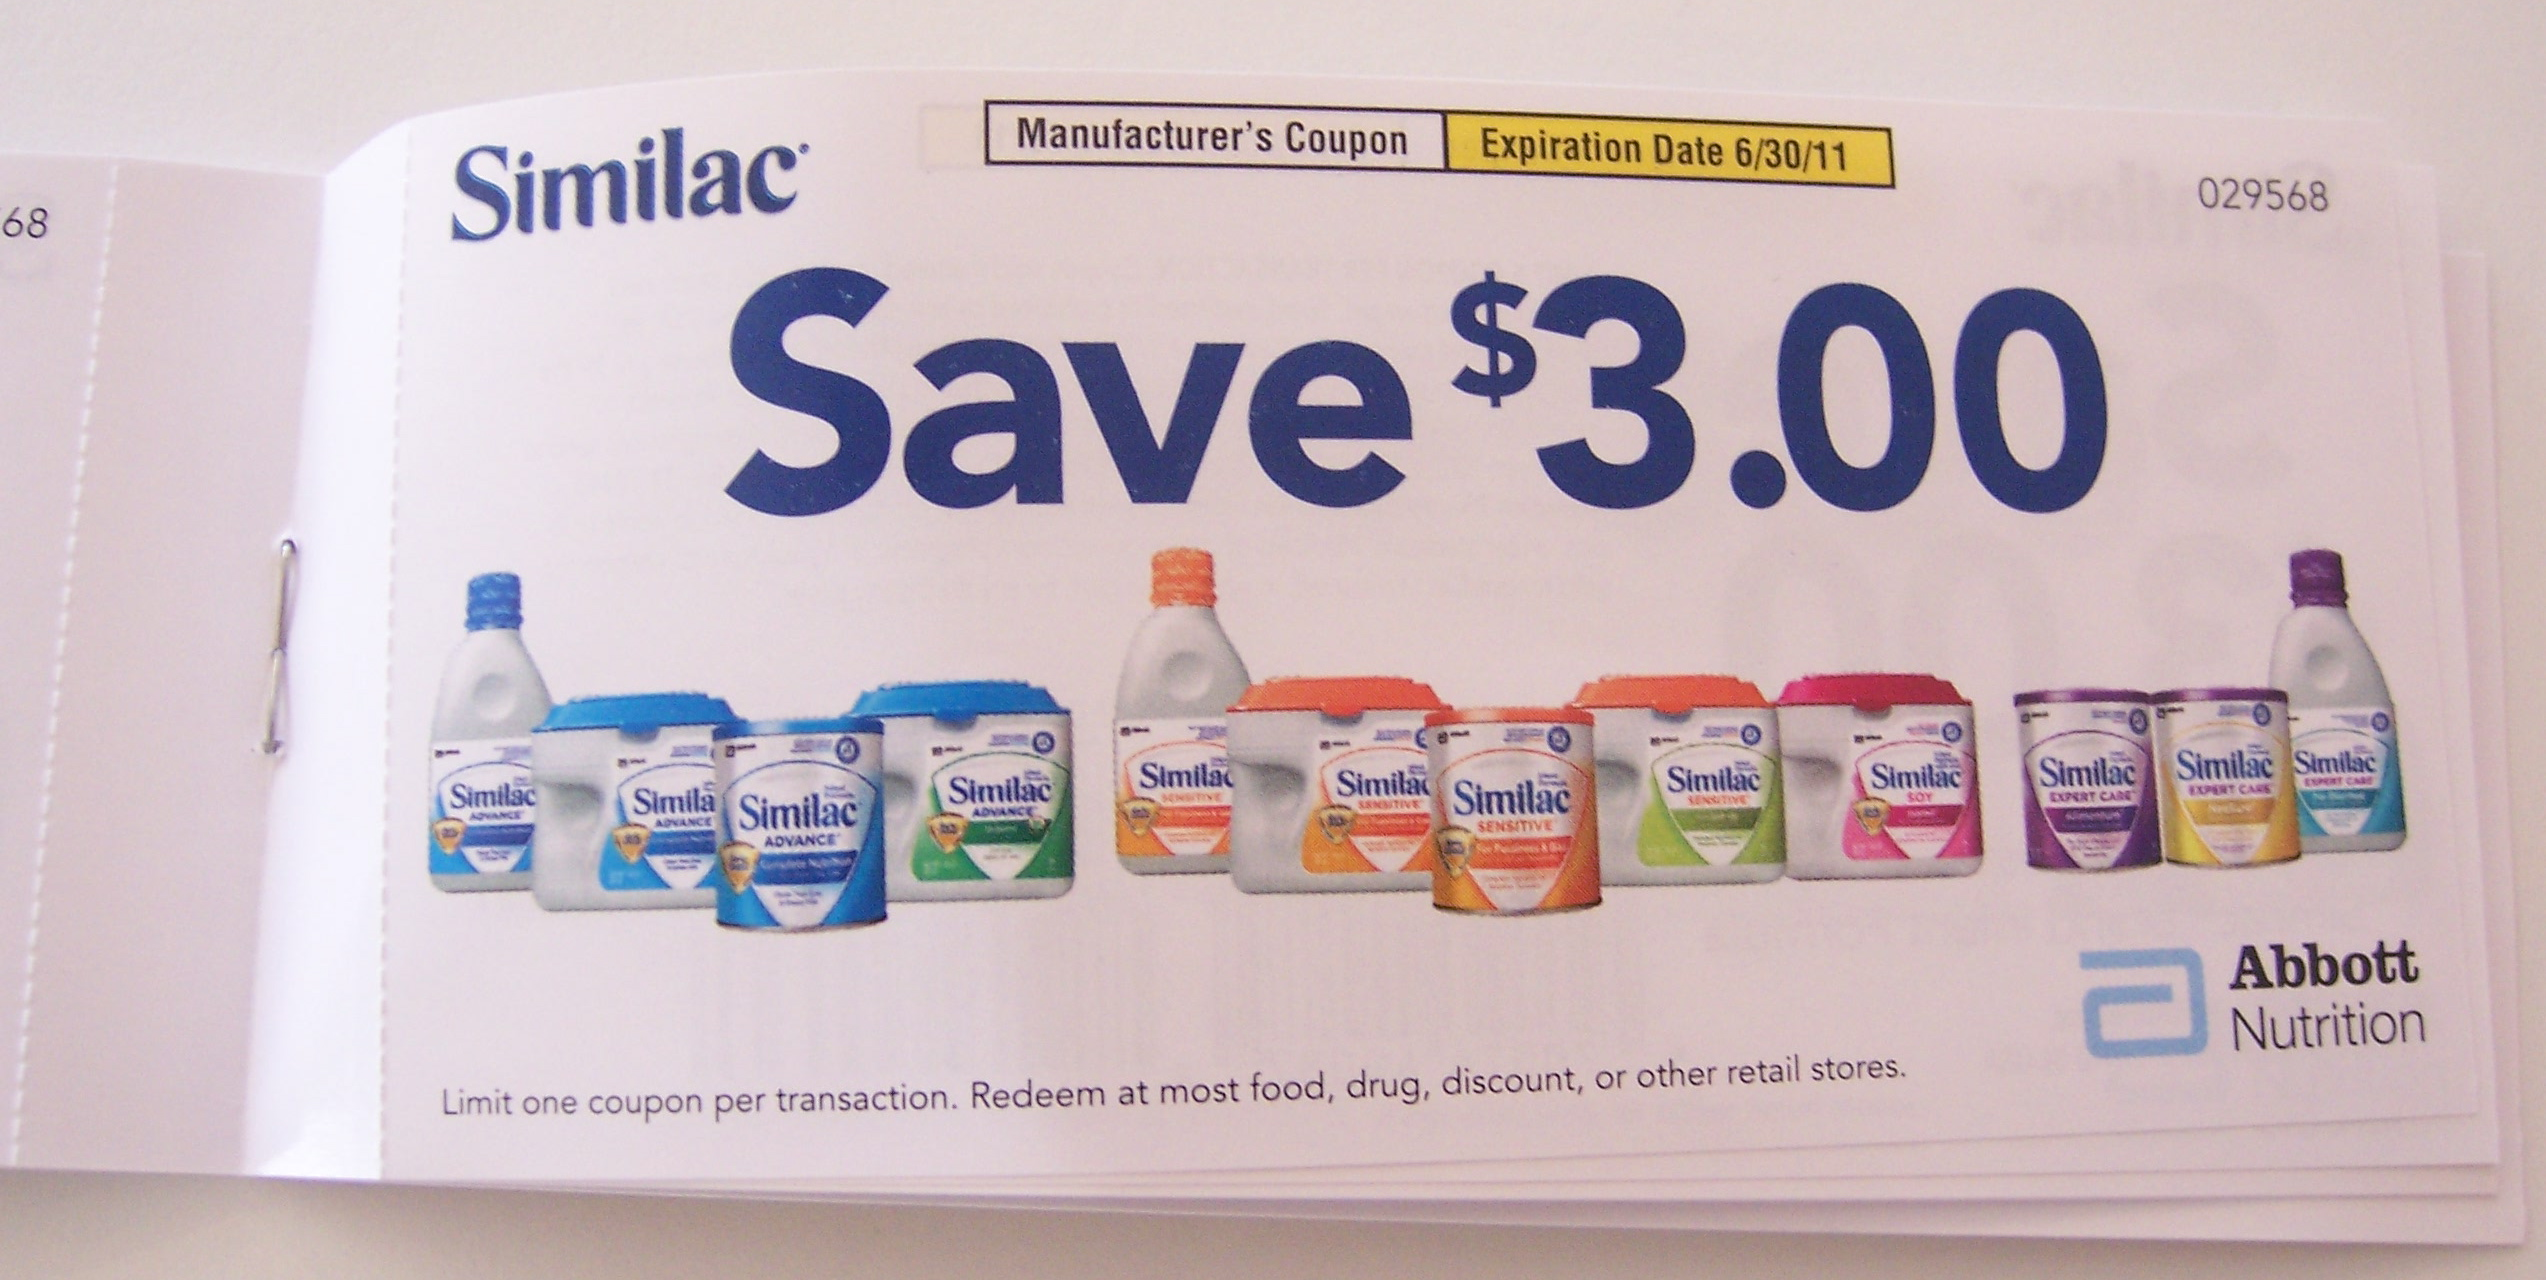 photo regarding Similac Printable Coupons called Similac Coupon Printable Coupon codes DB 2016